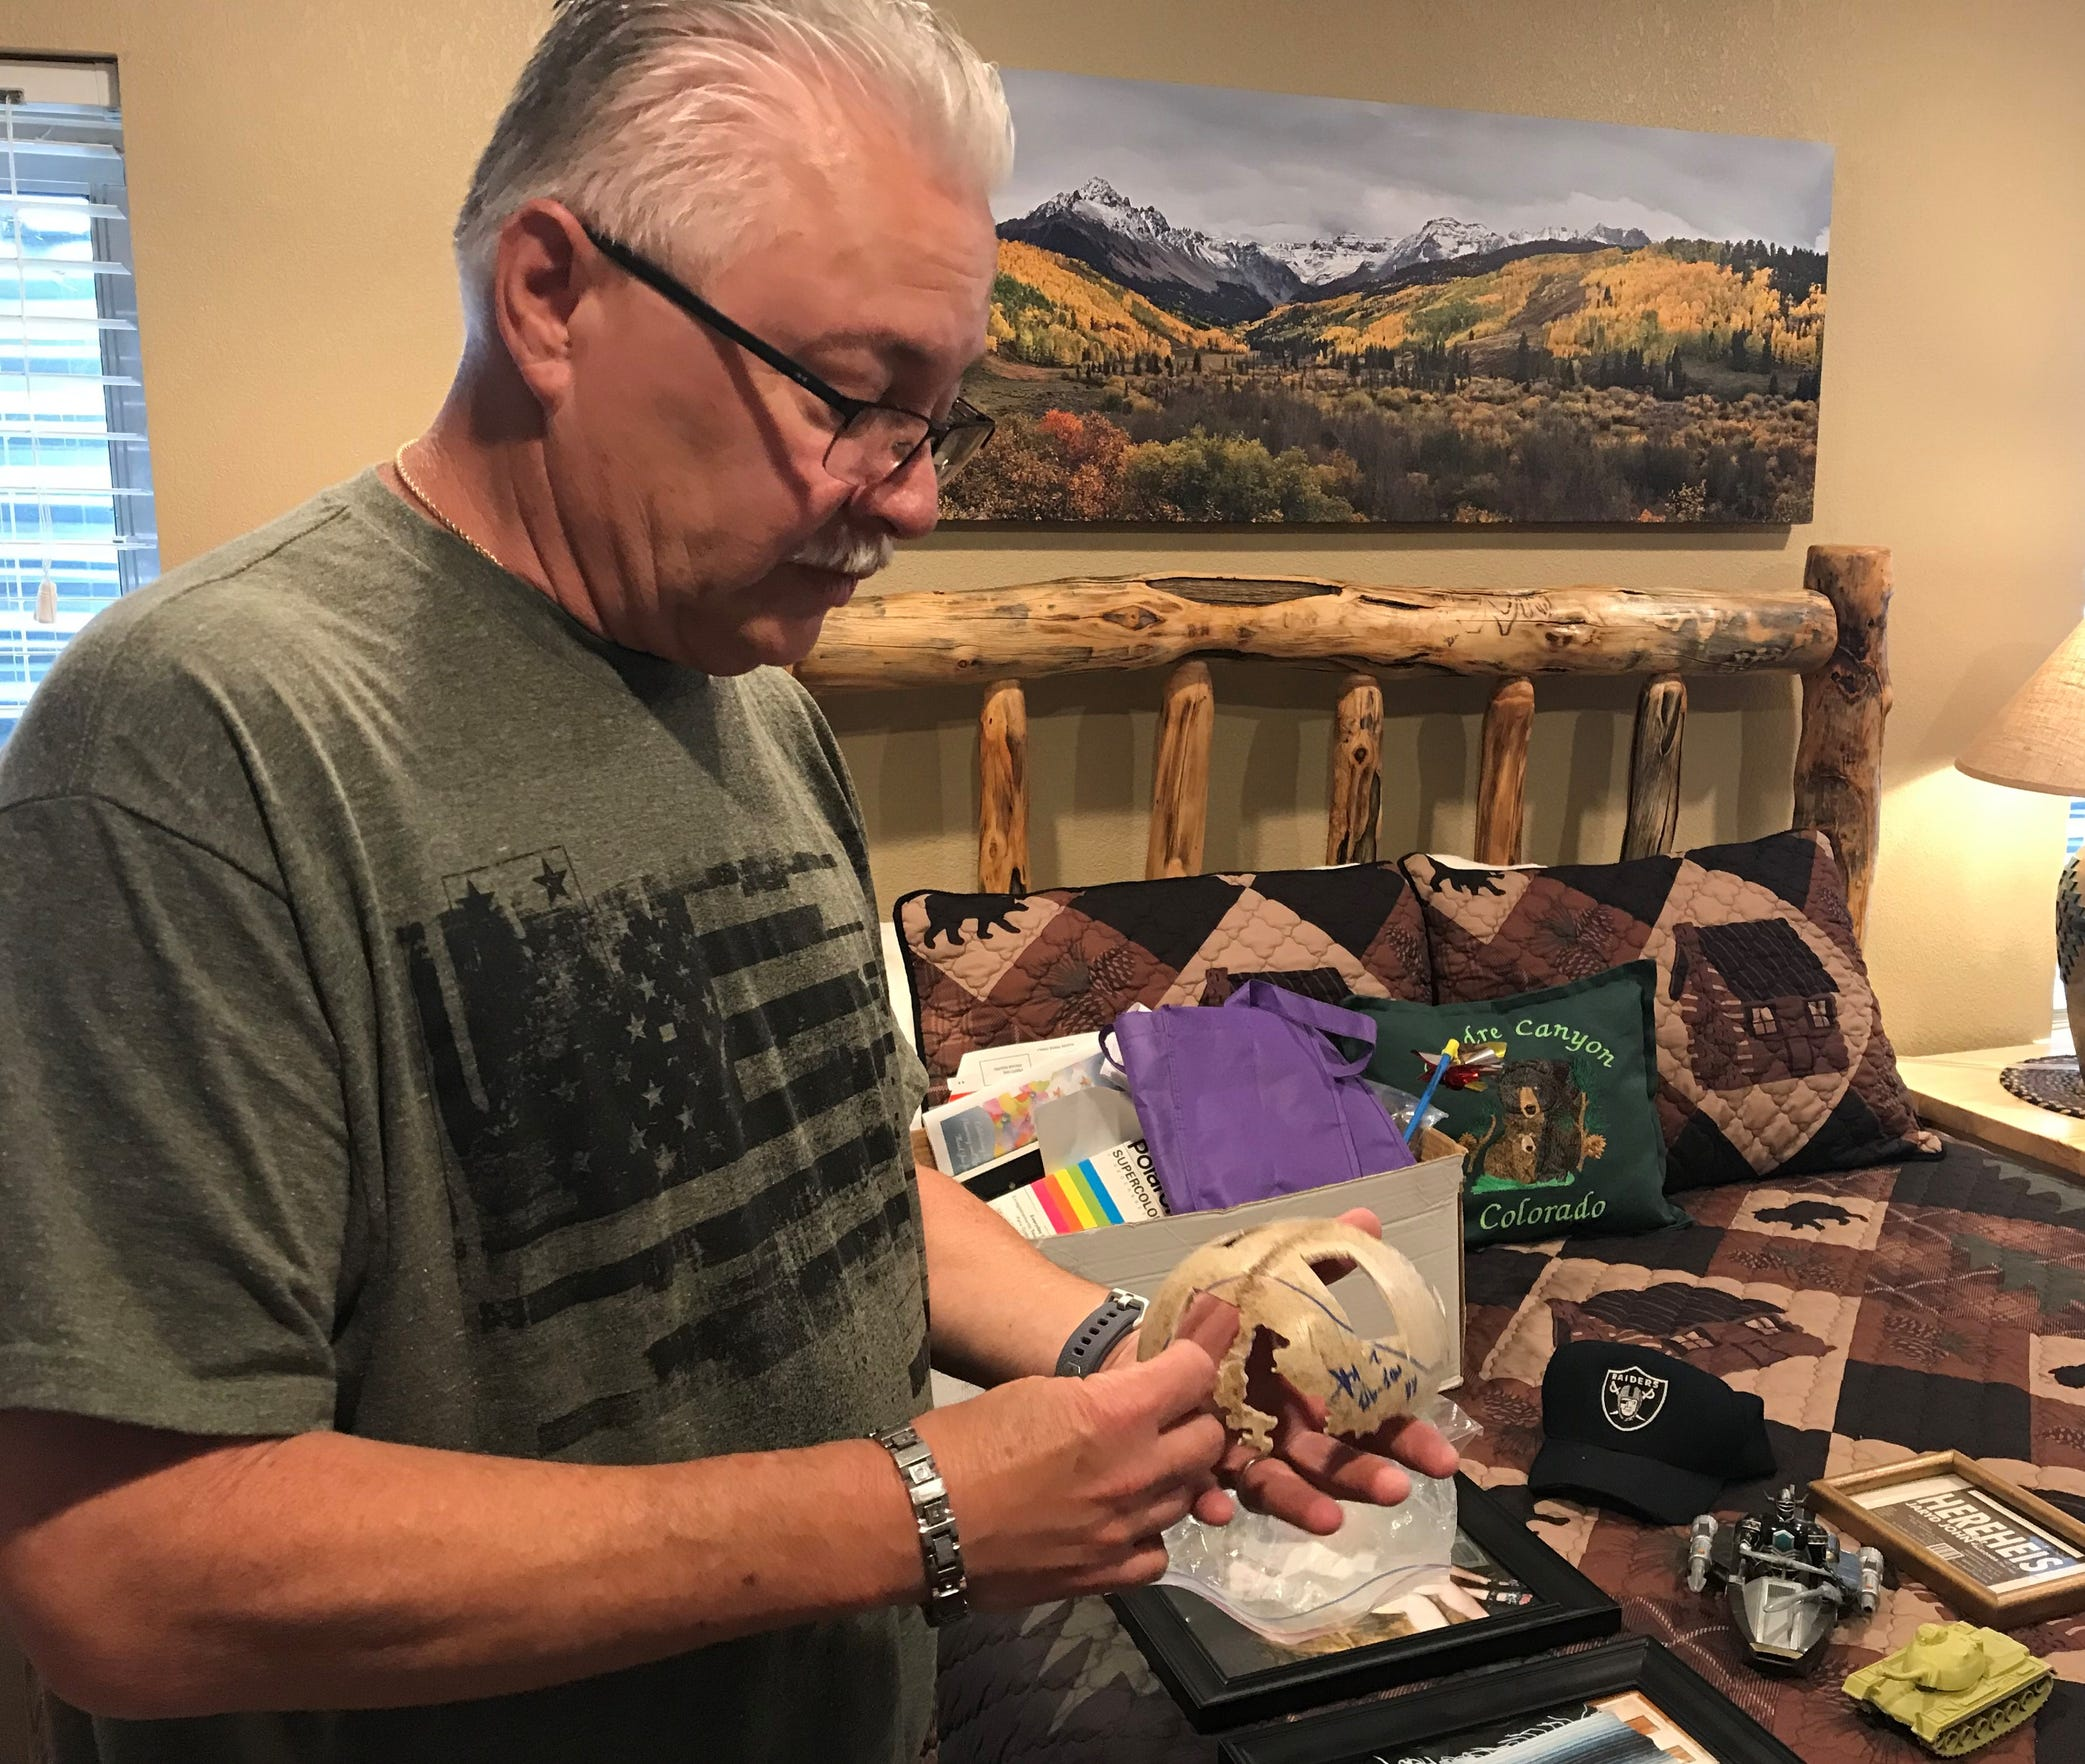 Allyn Atadero looks over the skull cap of his son Jaryd Atadero, who disappeared in the Roosevelt National Forest and was found dead nearly 20 years ago, while other reminders of Jaryd lie on a bed in his home in Parker.